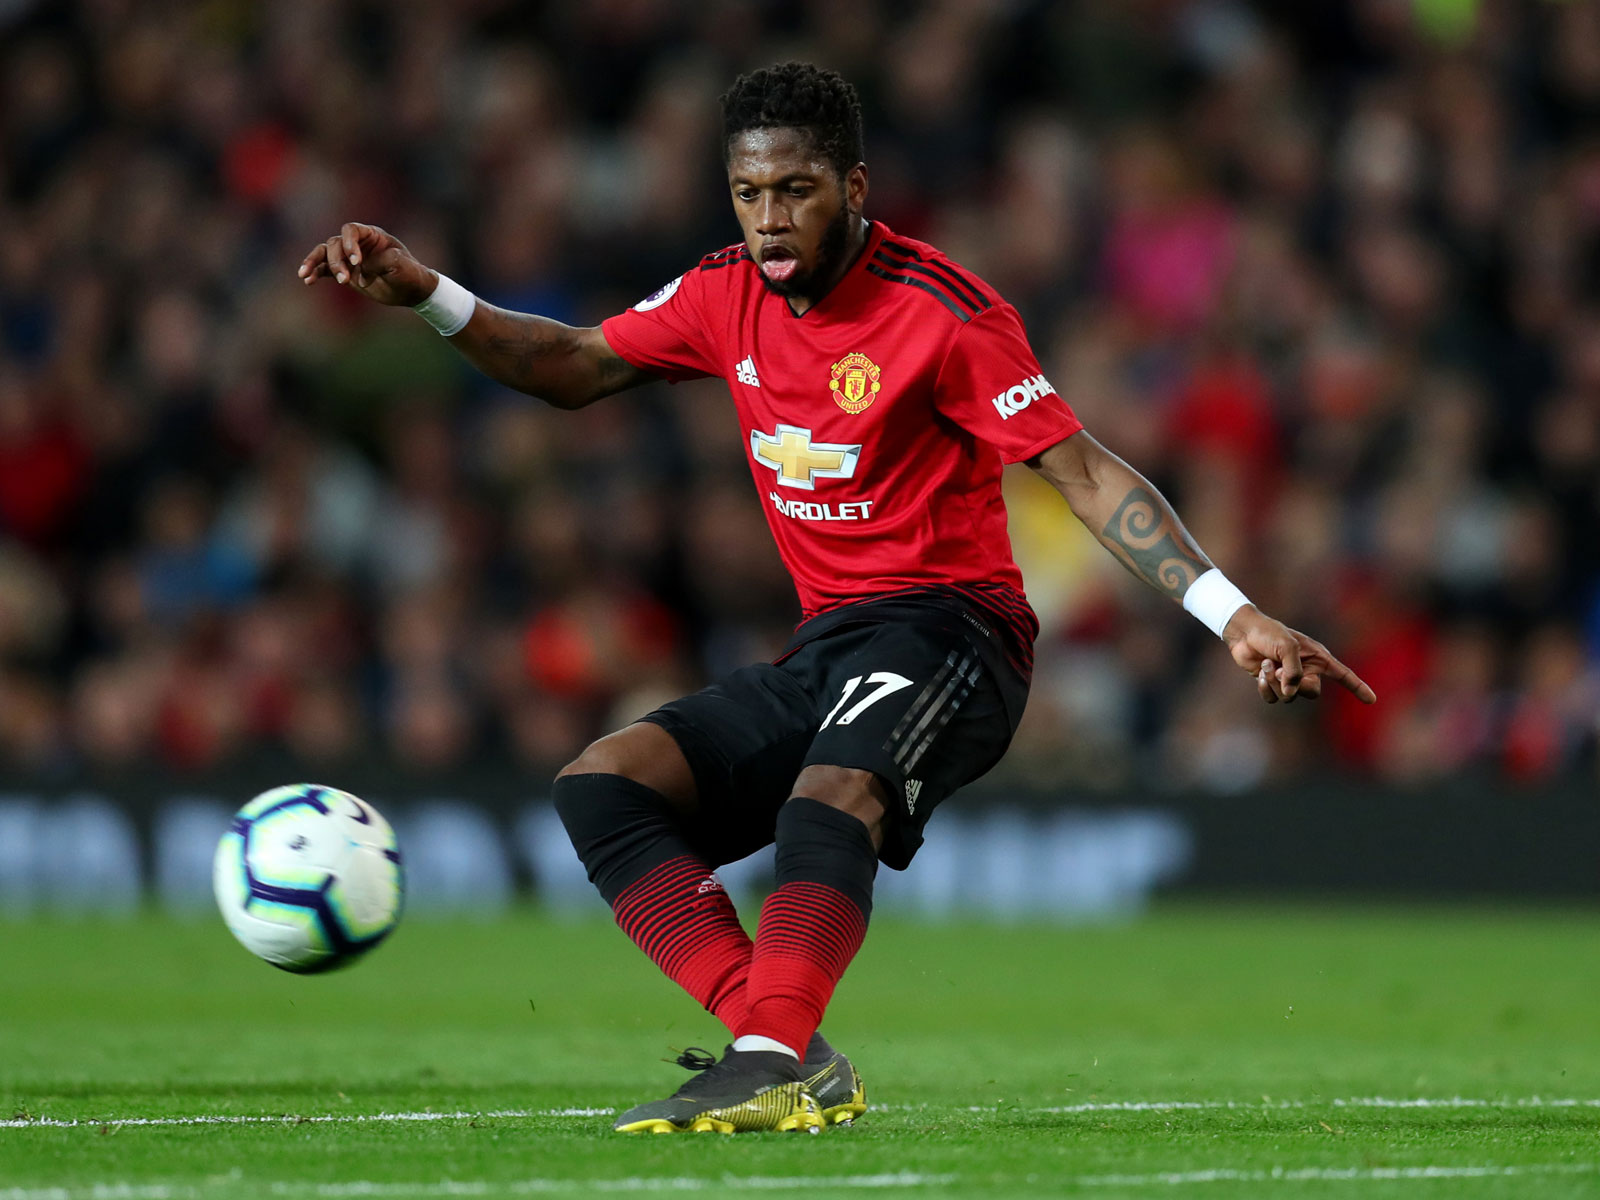 Fred has struggled in his first Manchester United season